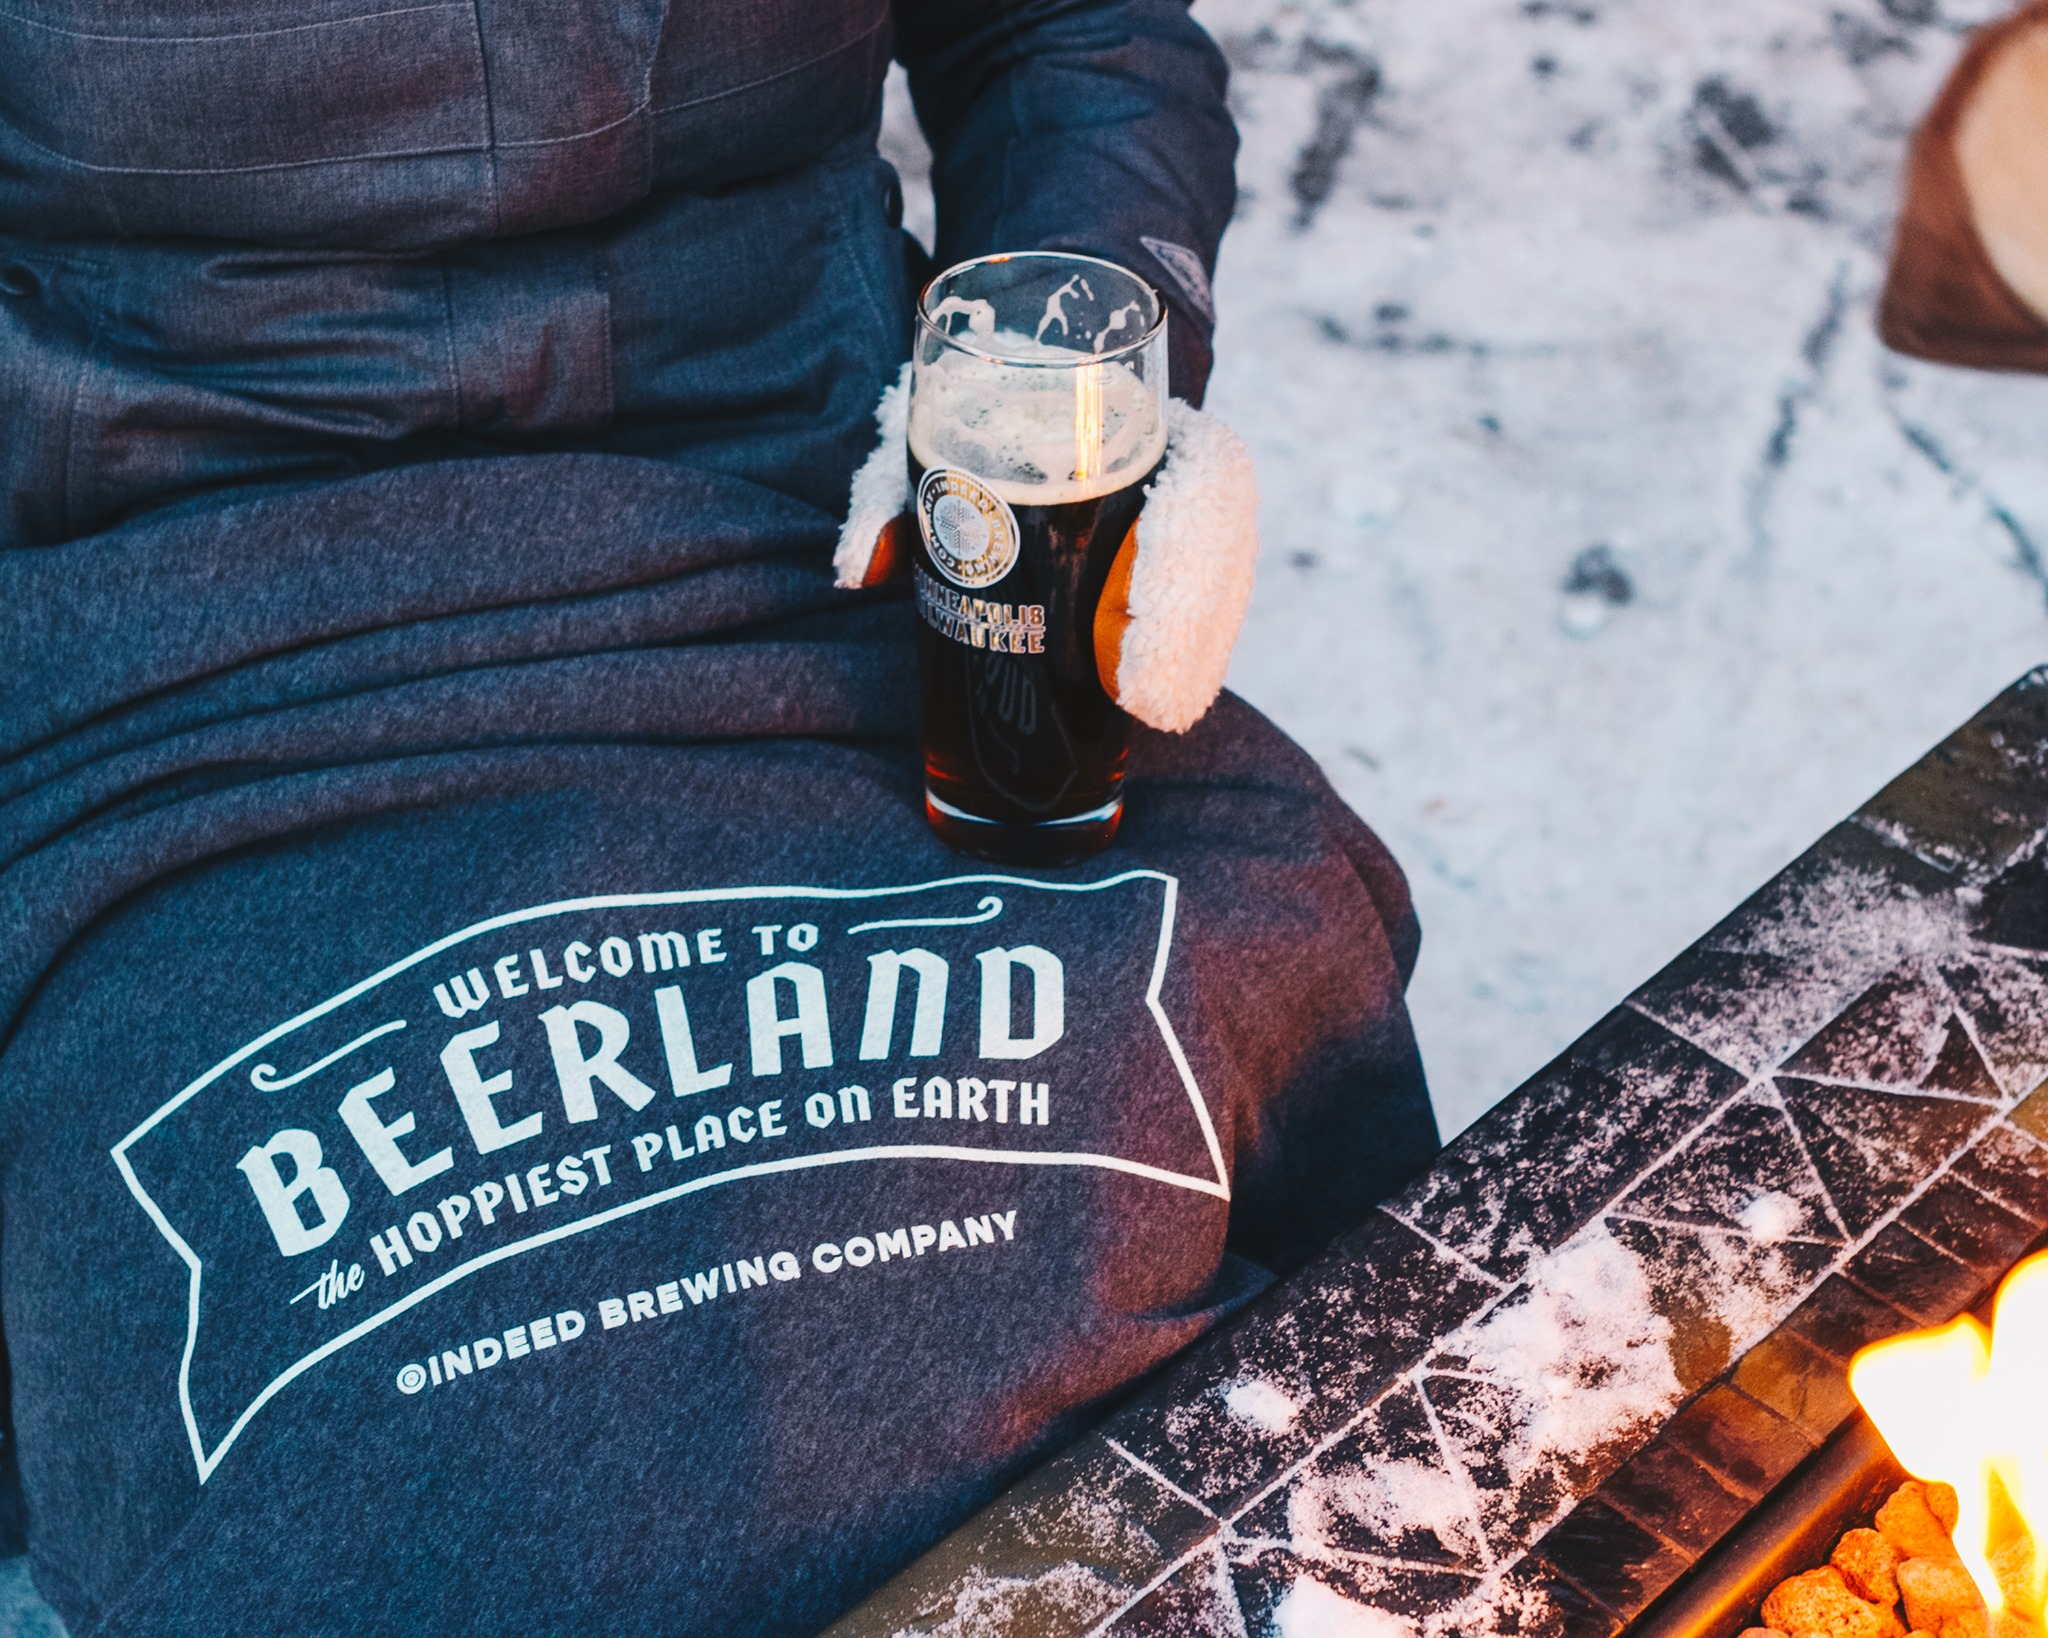 """A person sits with a """"Beerland: the hoppiest place on earth"""" t-shirt over their lap. A beer in a mittened hand, and a firepit is visible at the edge of the image."""